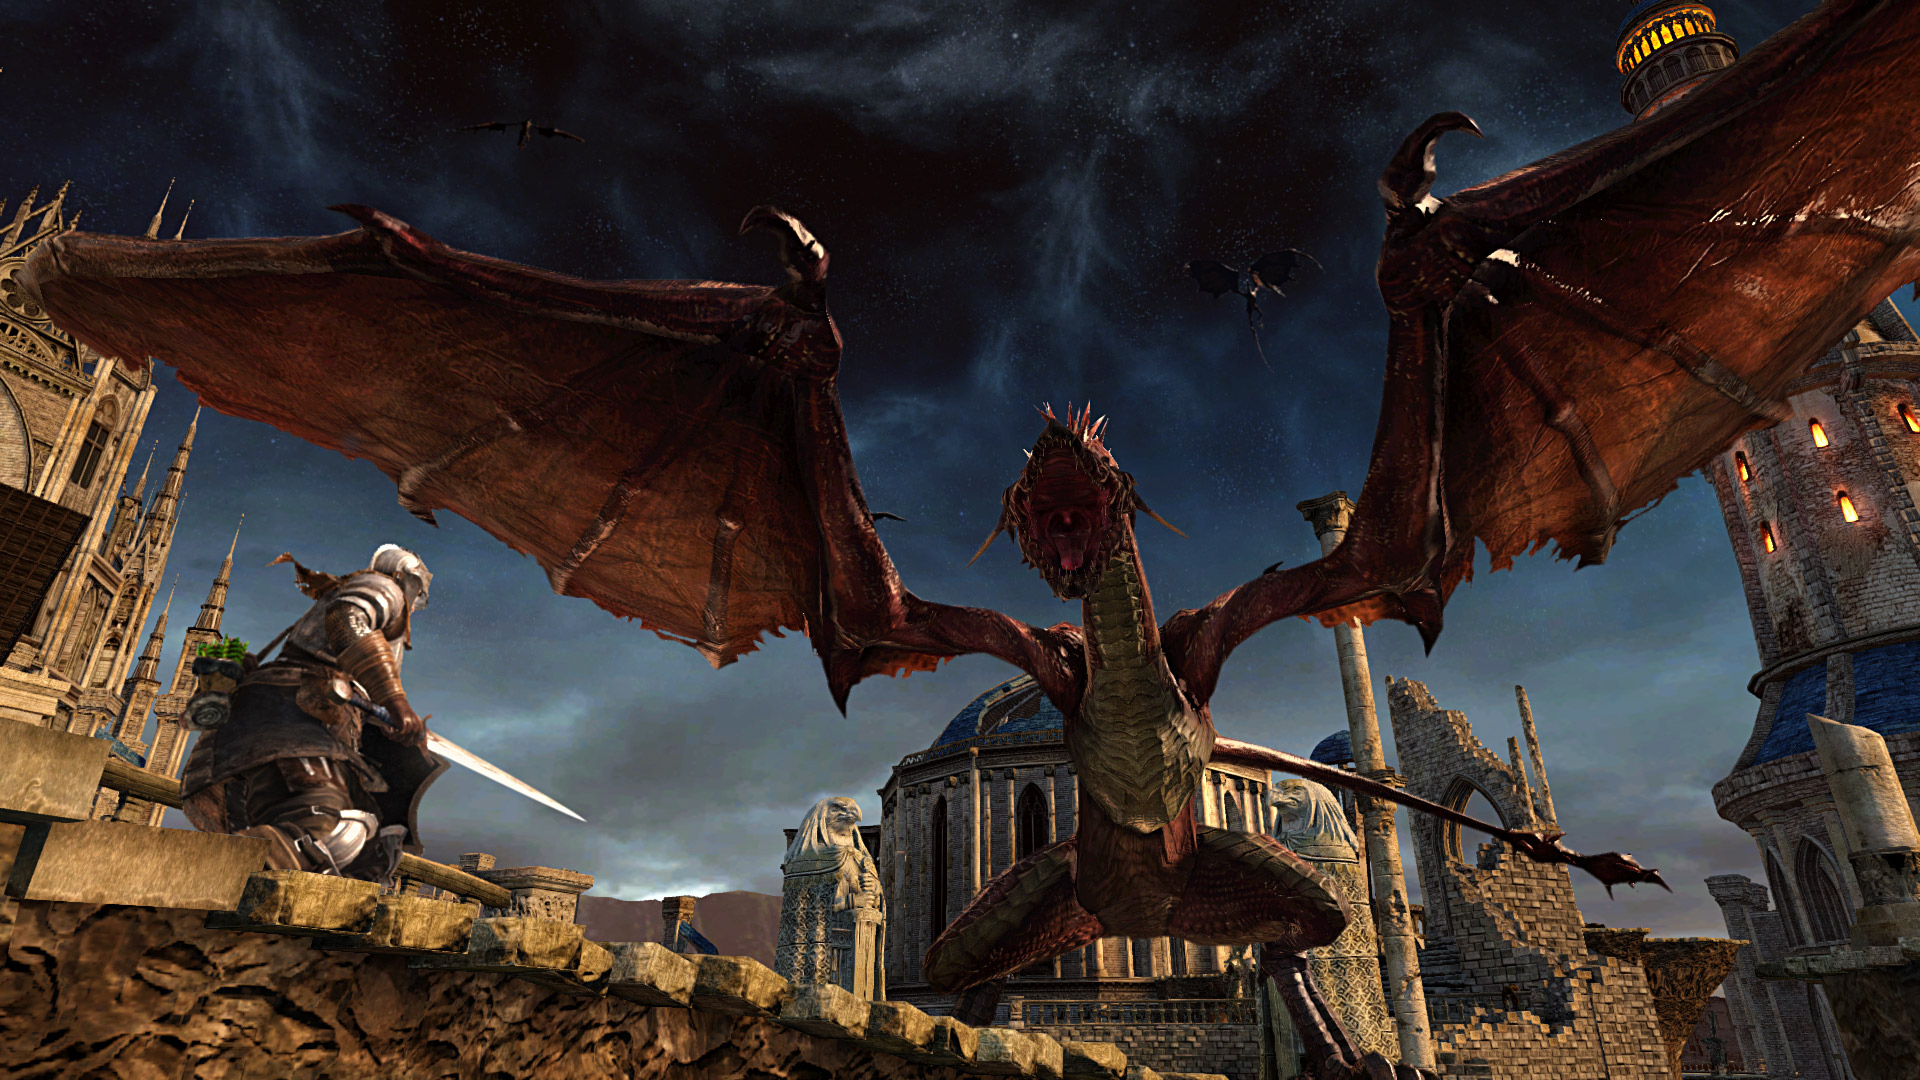 http://www.forbes.com/sites/erikkain/2014/11/25/dark-souls-ii-is-coming-to-ps4-xbox-one-in-scholar-of-the-first-sin/